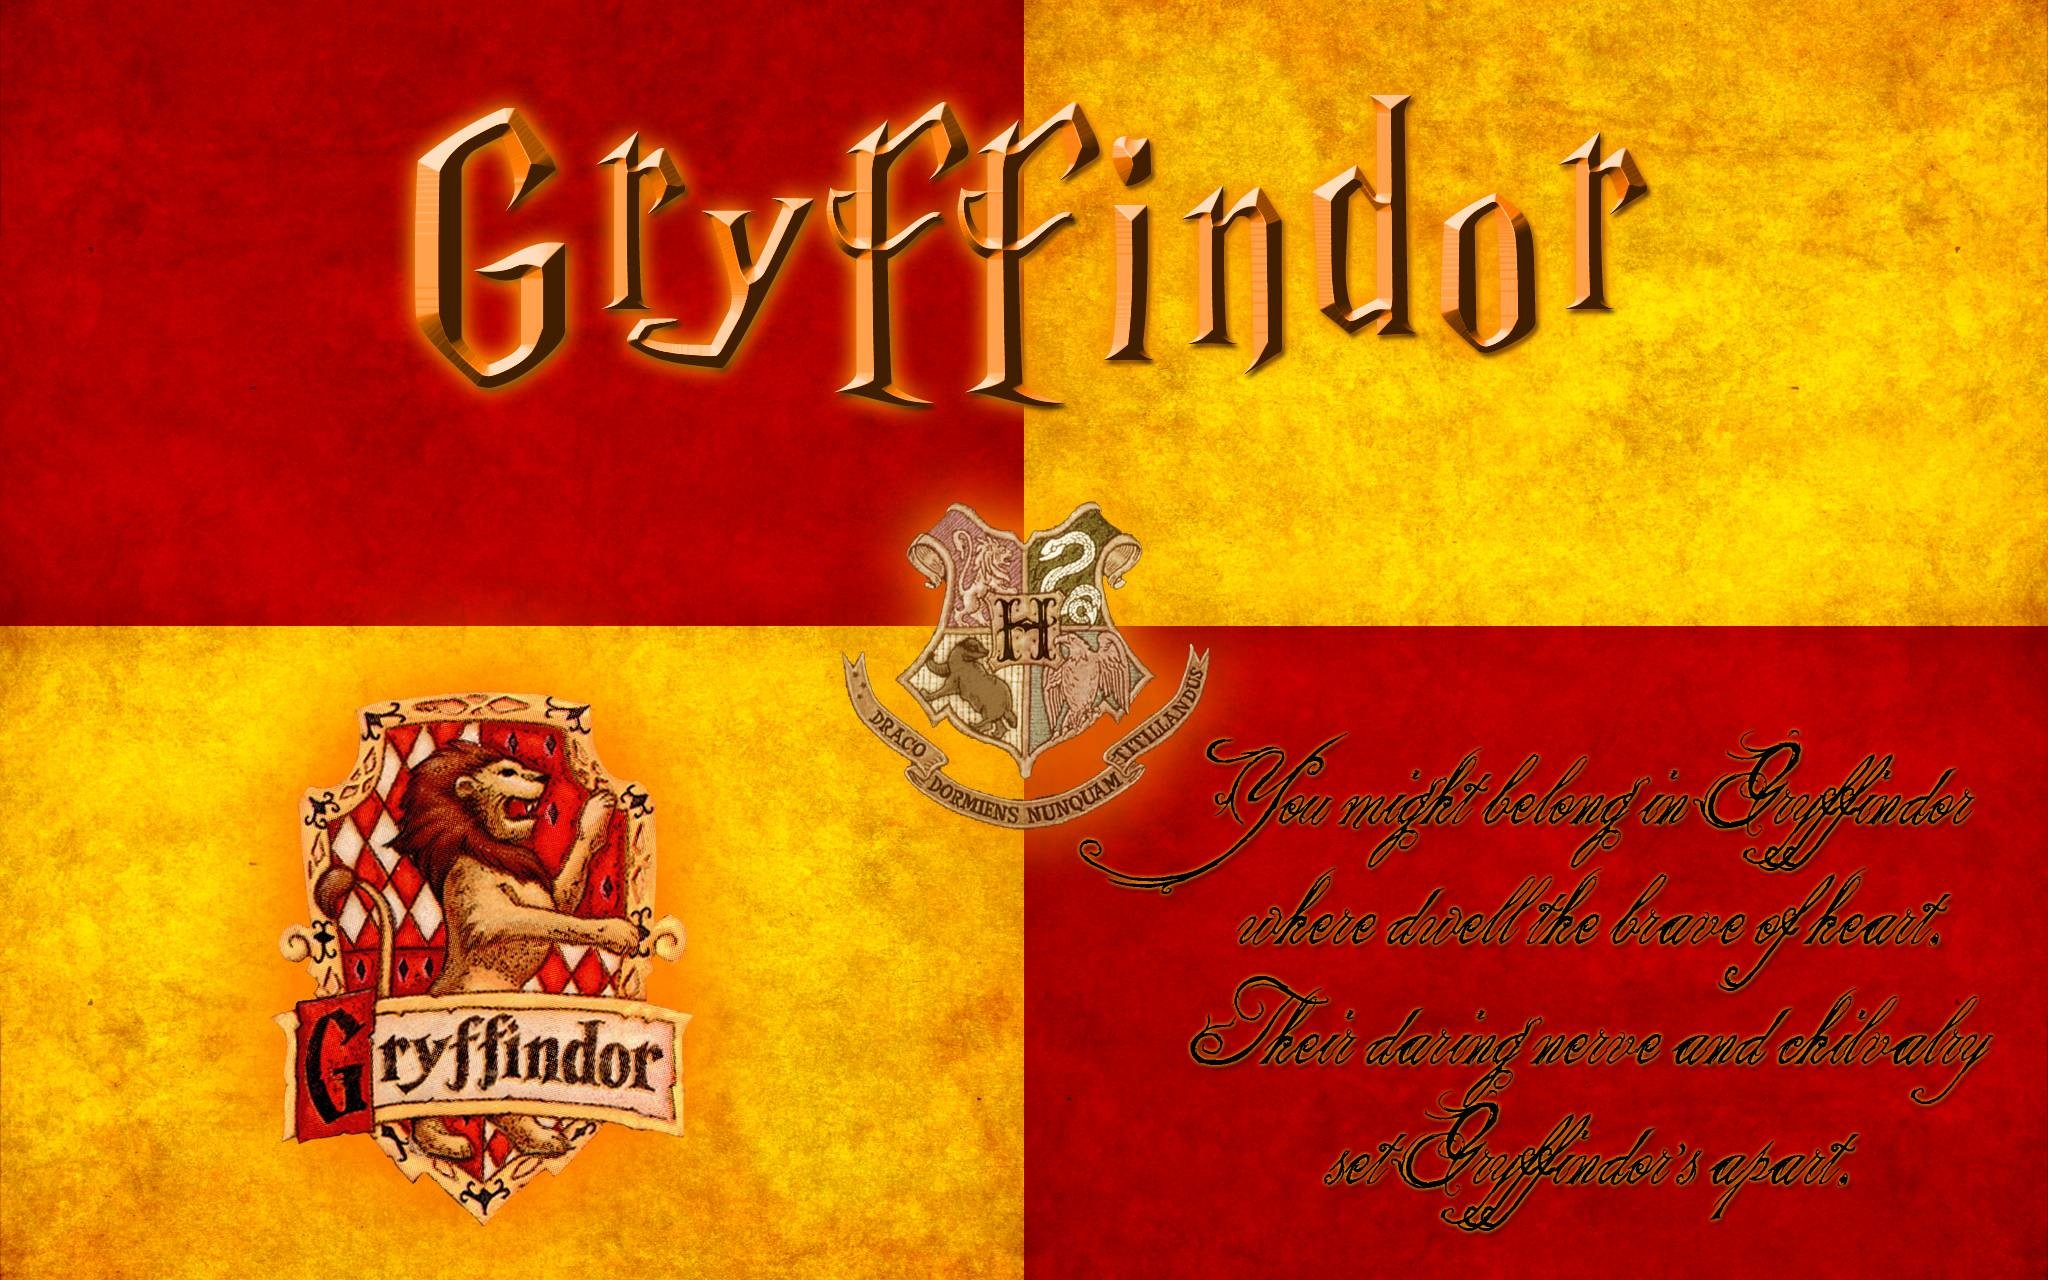 Hd Wallpaper Cars Free Download Harry Potter Gryffindor Wallpaper 64 Images